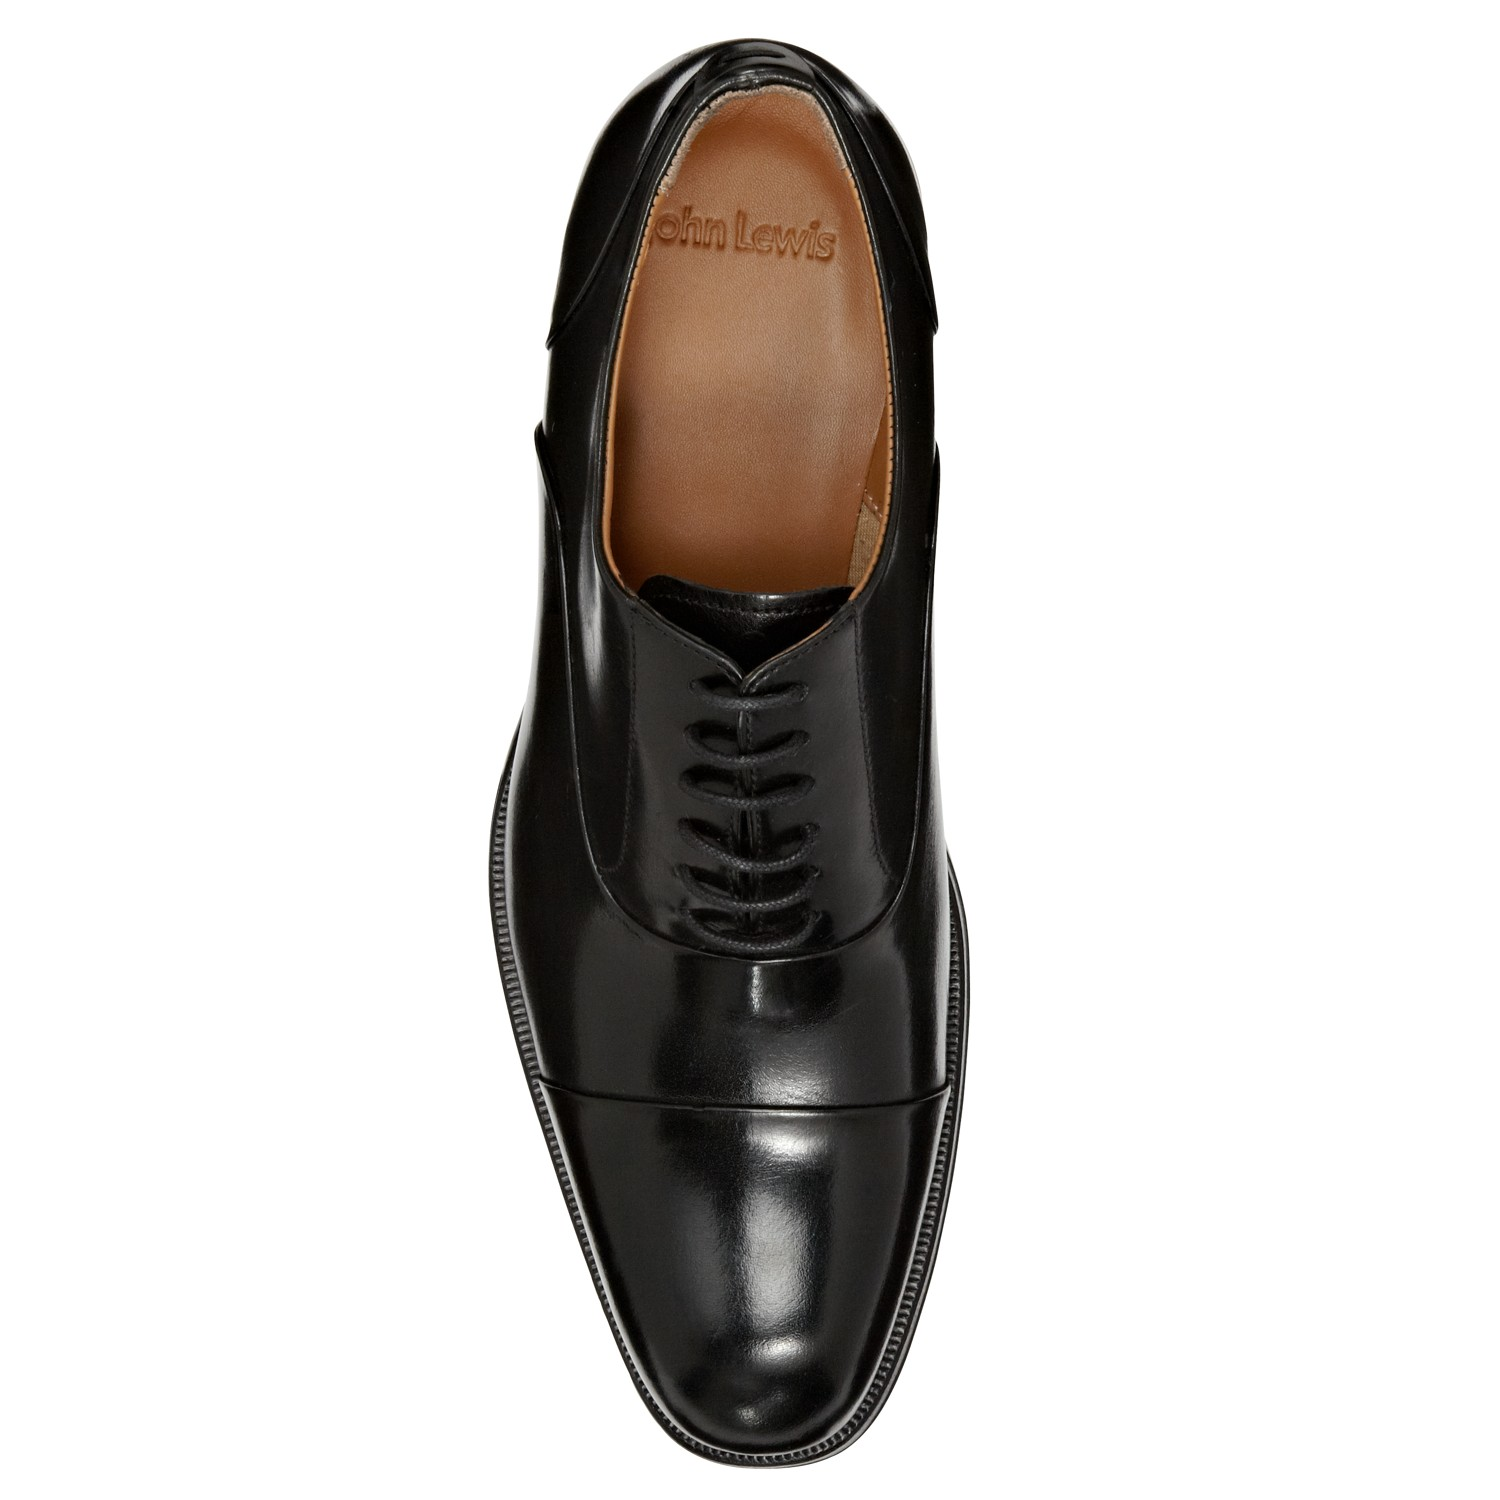 John Lewis Black Goodwin Leather Oxford Shoes For Men Lyst